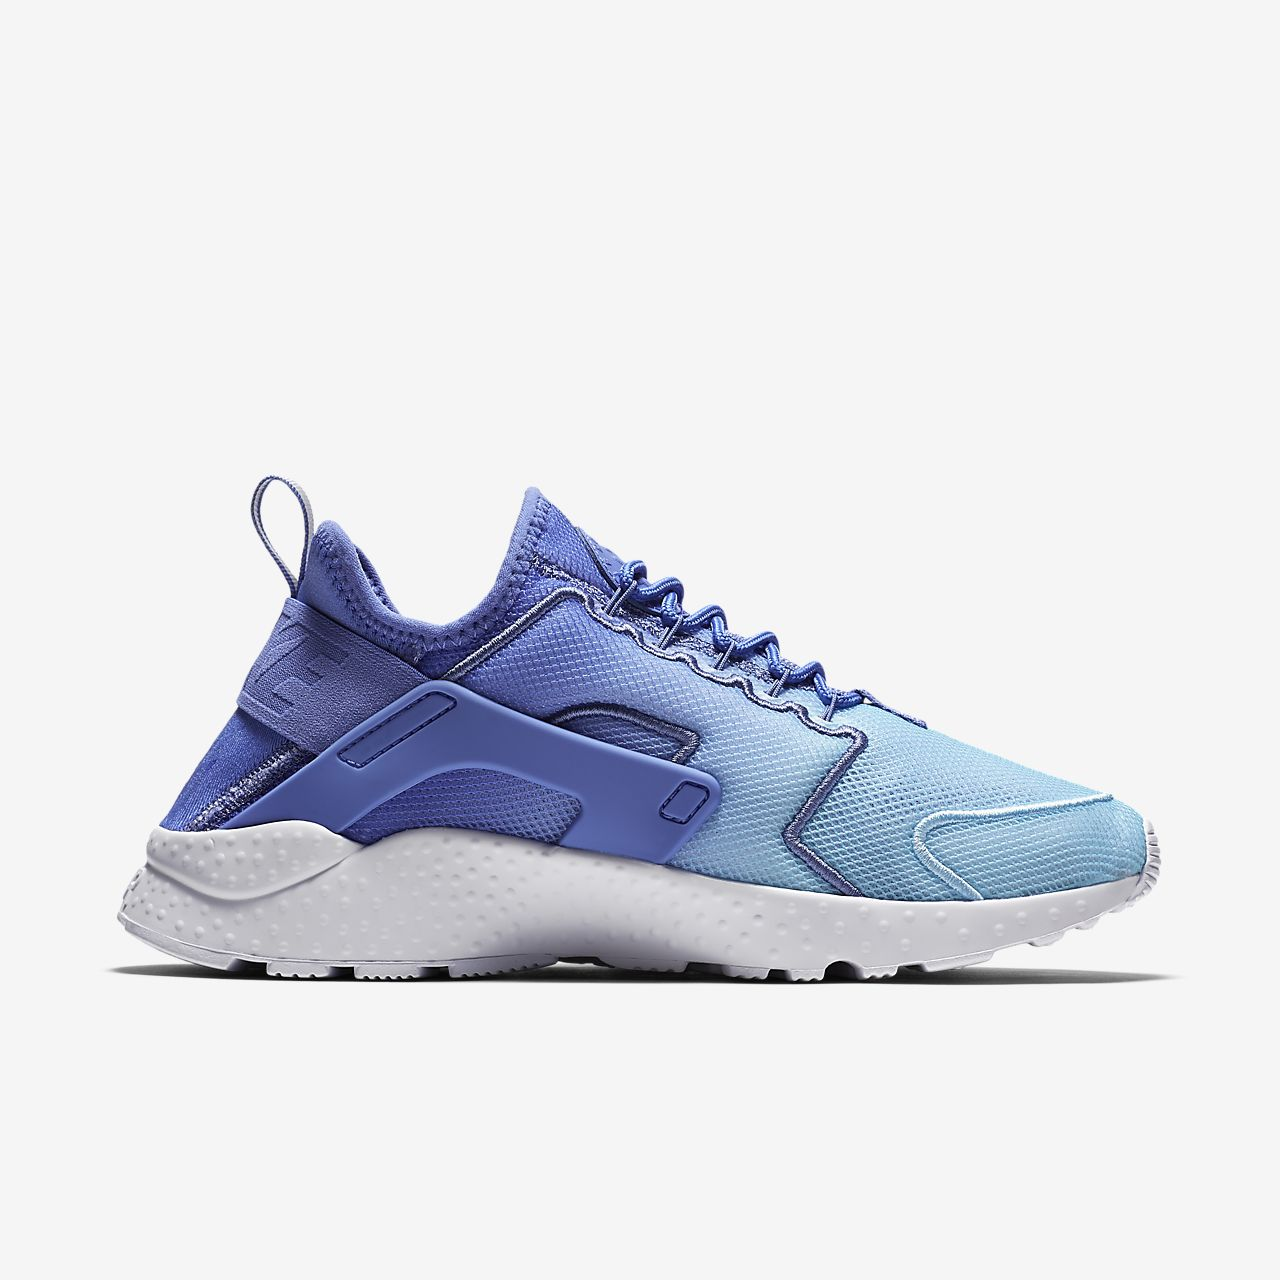 ... Nike Air Huarache Ultra Breathe Women's Shoe